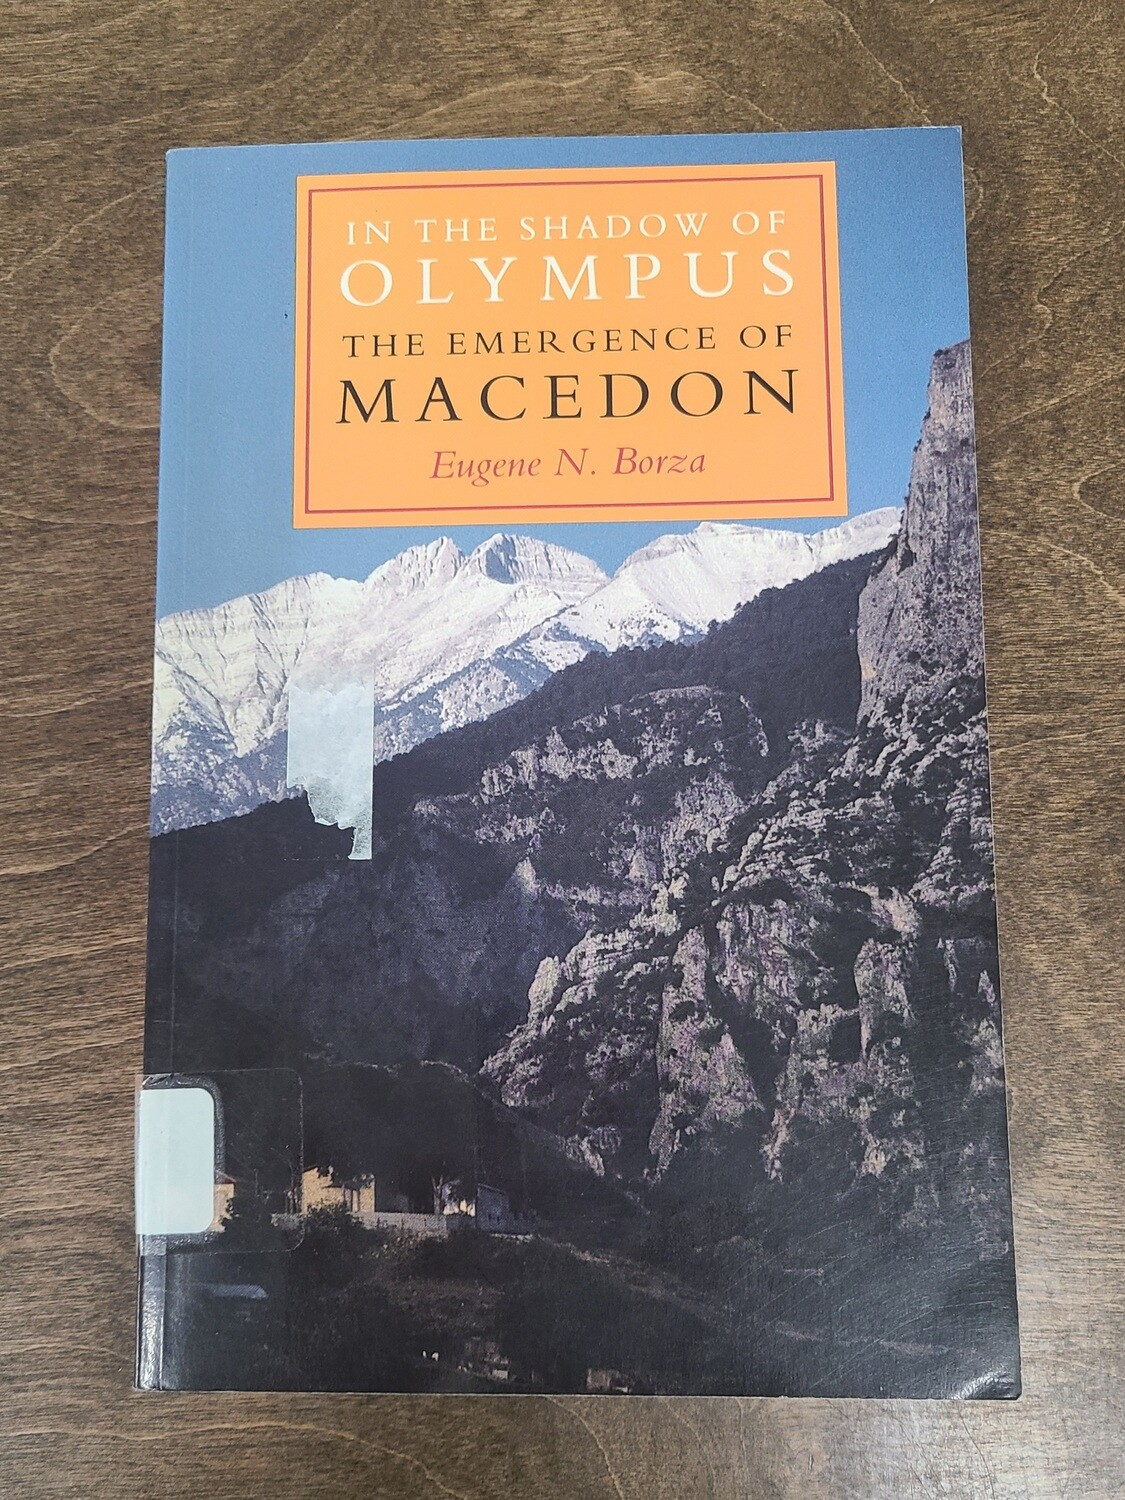 In The Shadow of Olympus: The Emergence of Macedon by Eugene N. Borza